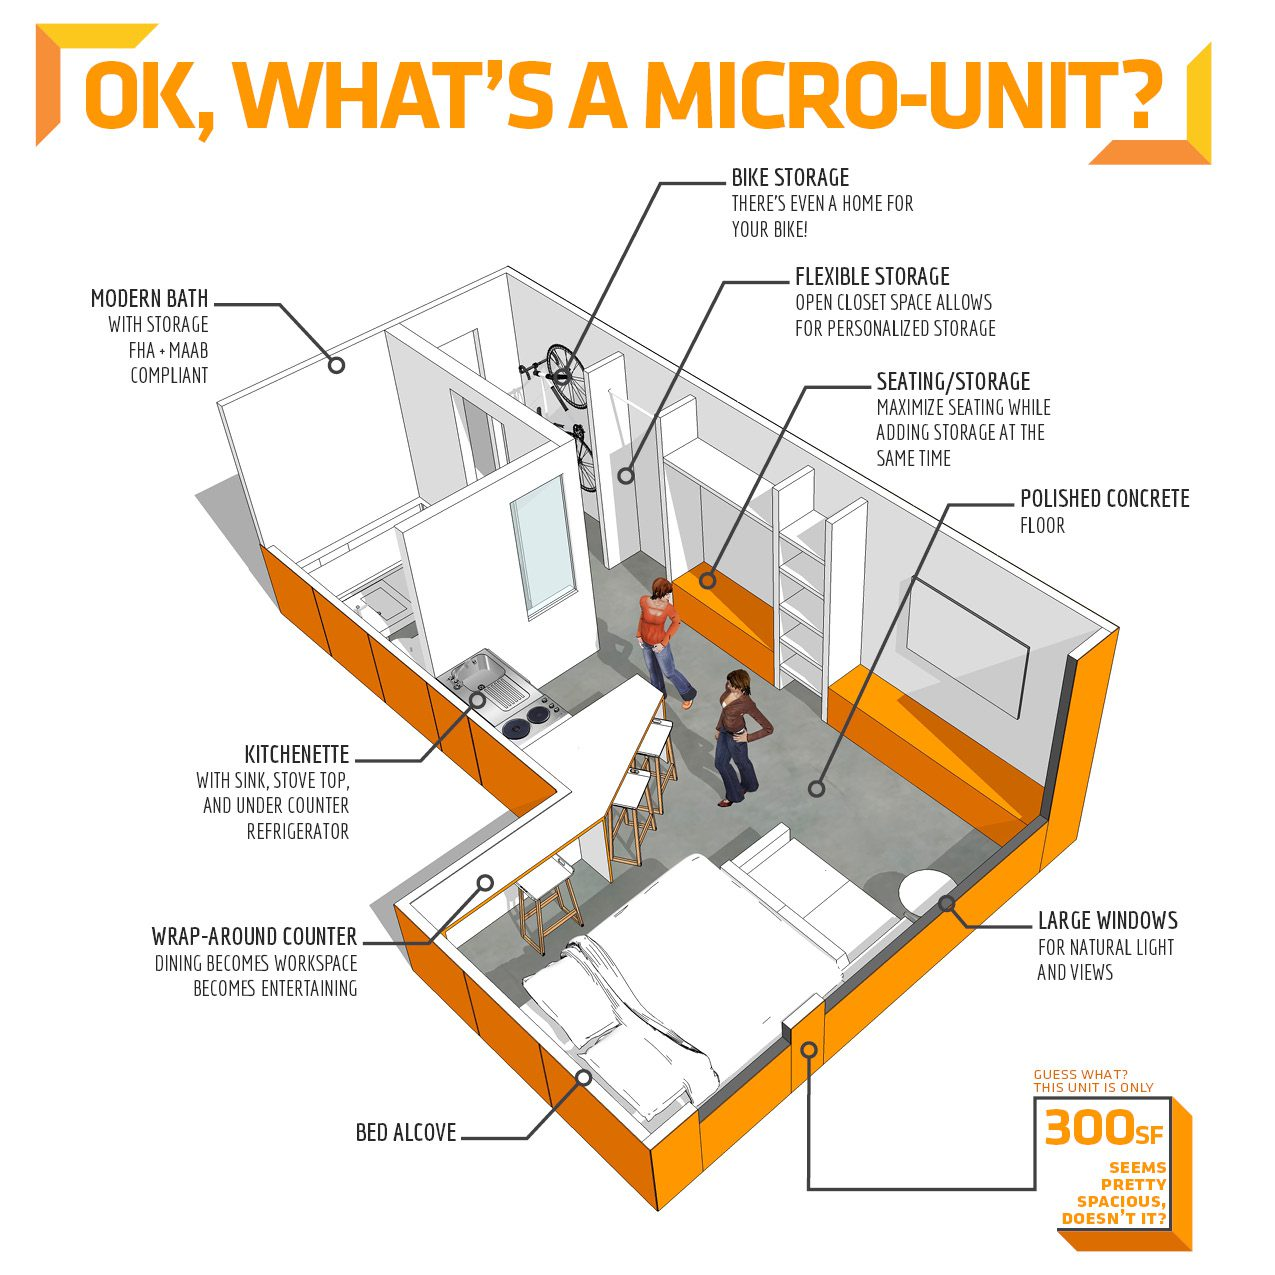 Floor plan of a micro unit.